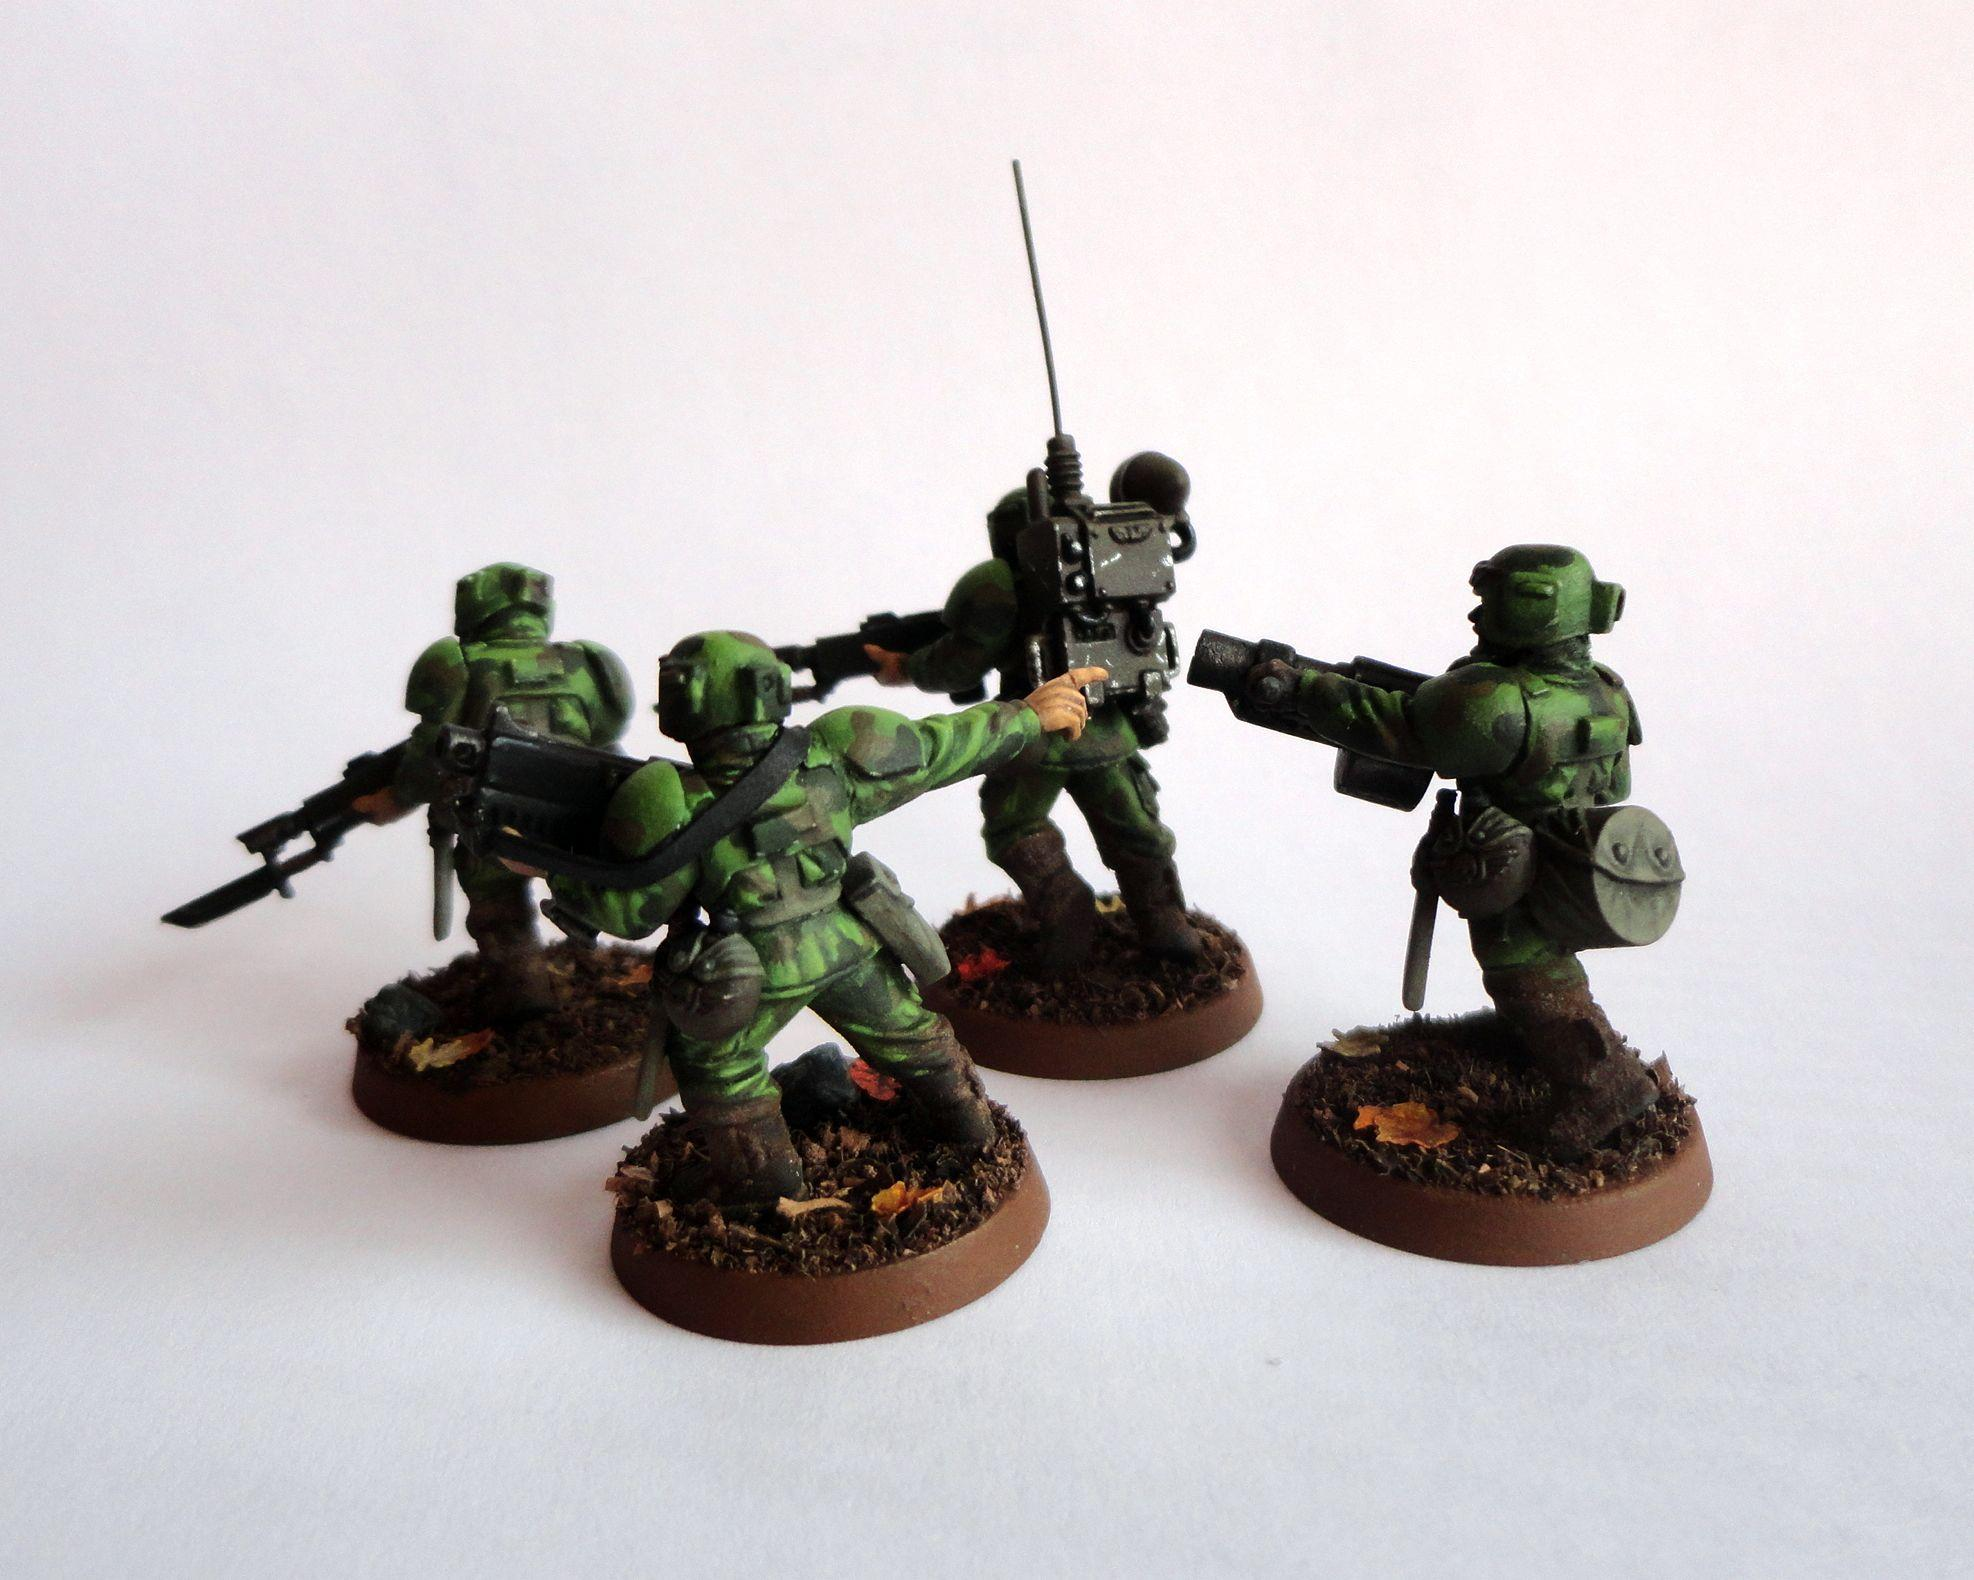 Astra Militarum, Cadians, Camouflage, Conversion, Imperial Guard, Infantry Squad, Vox